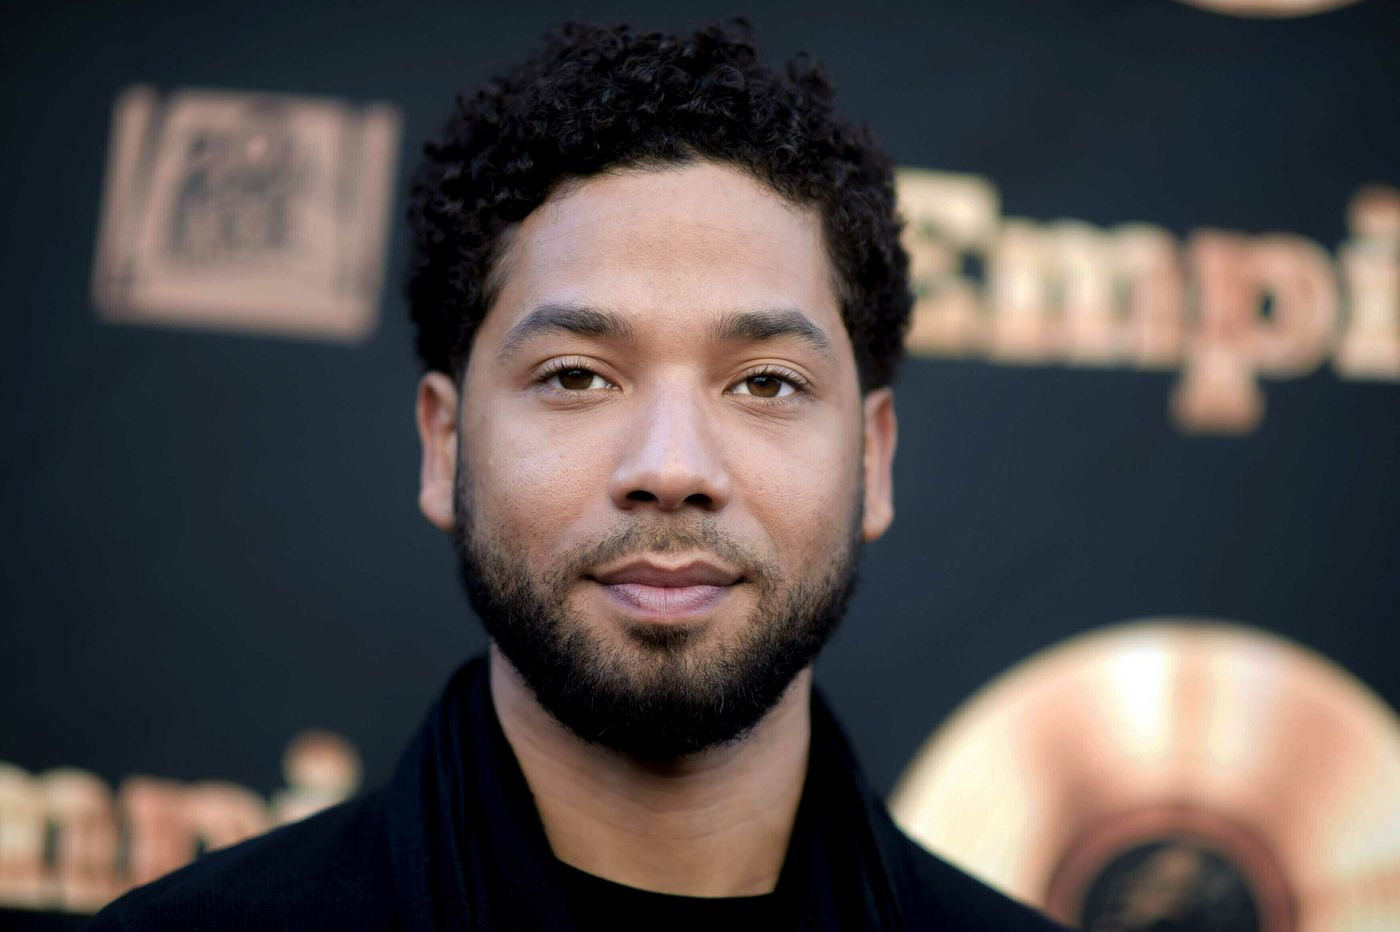 Jussie Smollett case a reminder that one false accuser can hurt all future victims | Christine Flowers